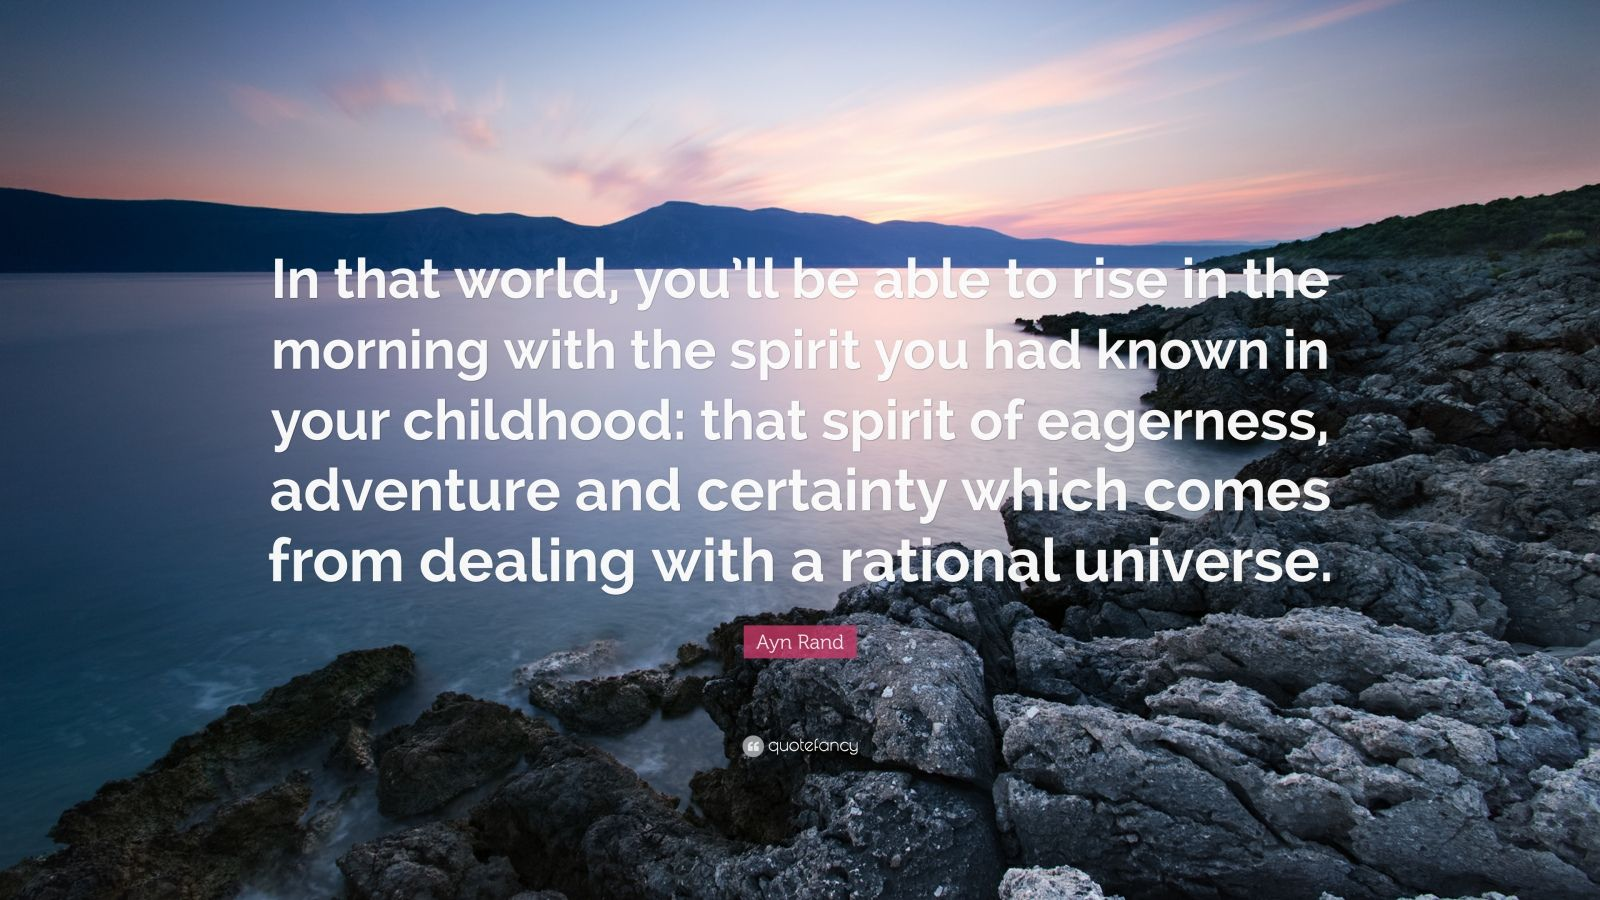 "Ayn Rand Quote: ""In that world, you'll be able to rise in the morning with the spirit you had known in your childhood: that spirit of eagerness, adventure and certainty which comes from dealing with a rational universe."""